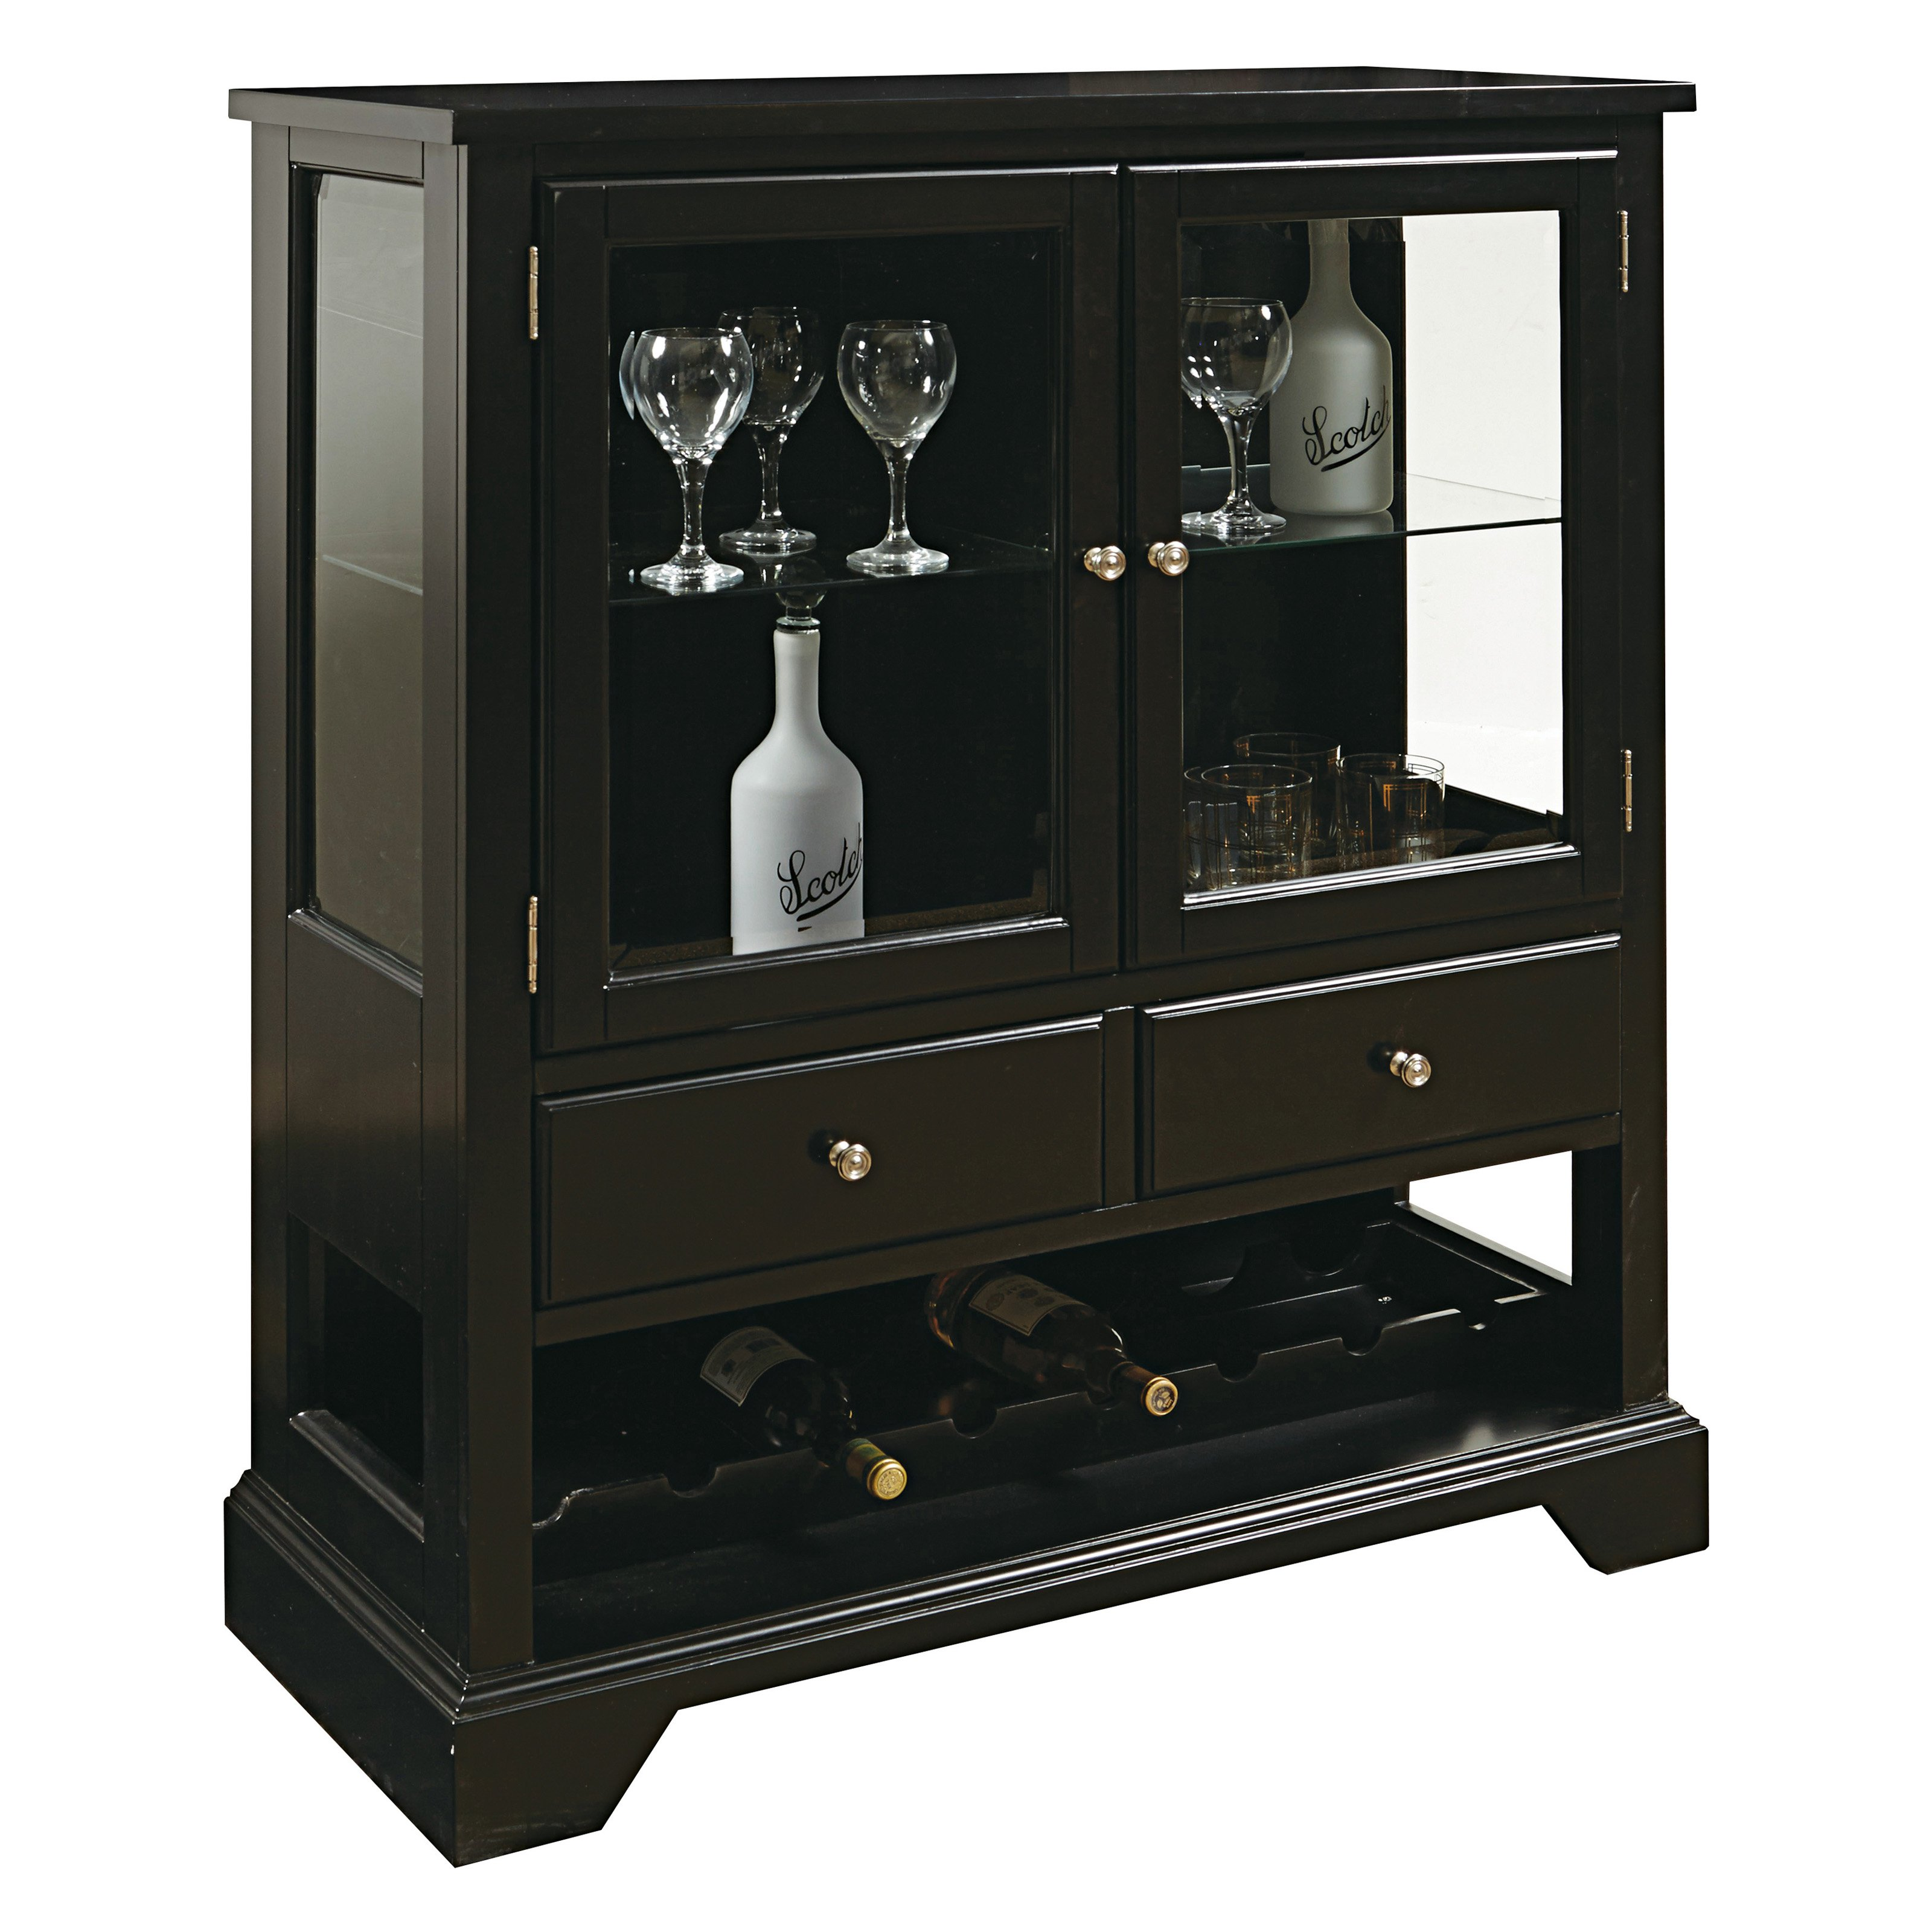 Pulaski Furniture Grullo Dark Wood Wine Cabinet - Walmart.com